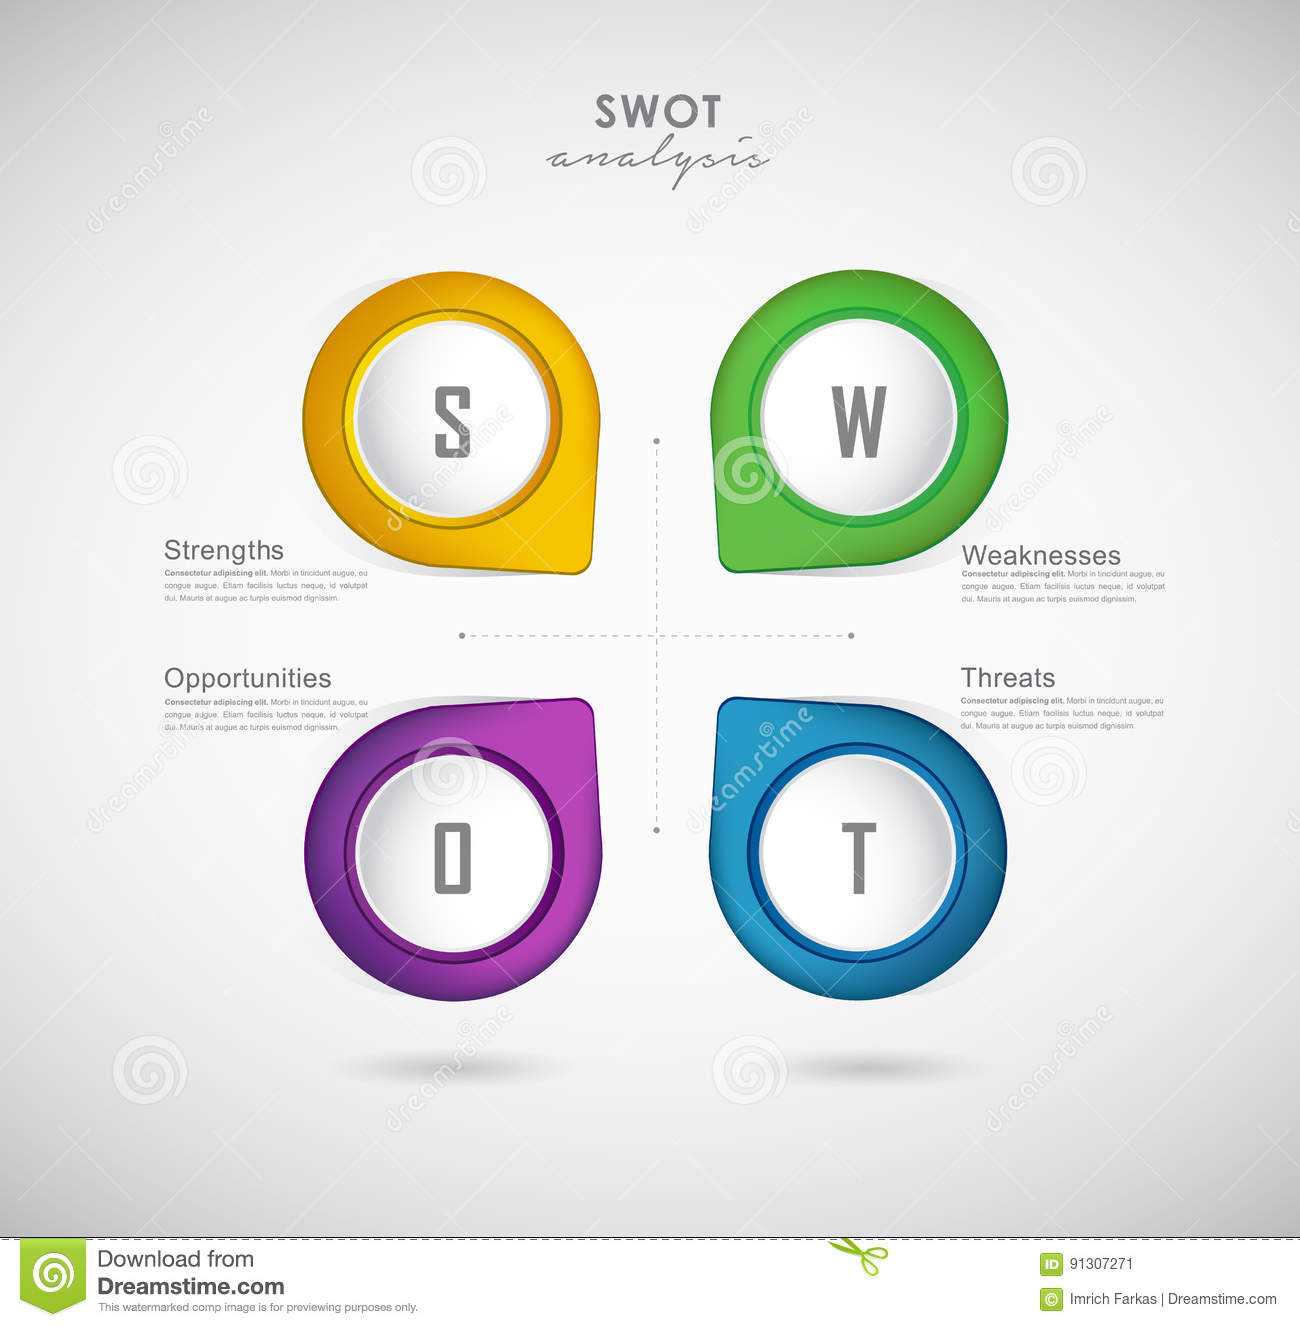 google swot strenghts weakness vrin Swot analysis this part involves analyzing h &m strengths, weaknesses, opportunities and threats (a) strengths the company has one of the best human resources polices that help the company to attract the best fashion designers thereby giving the company competitive advantage over other firms in the fashion industry in the us market.